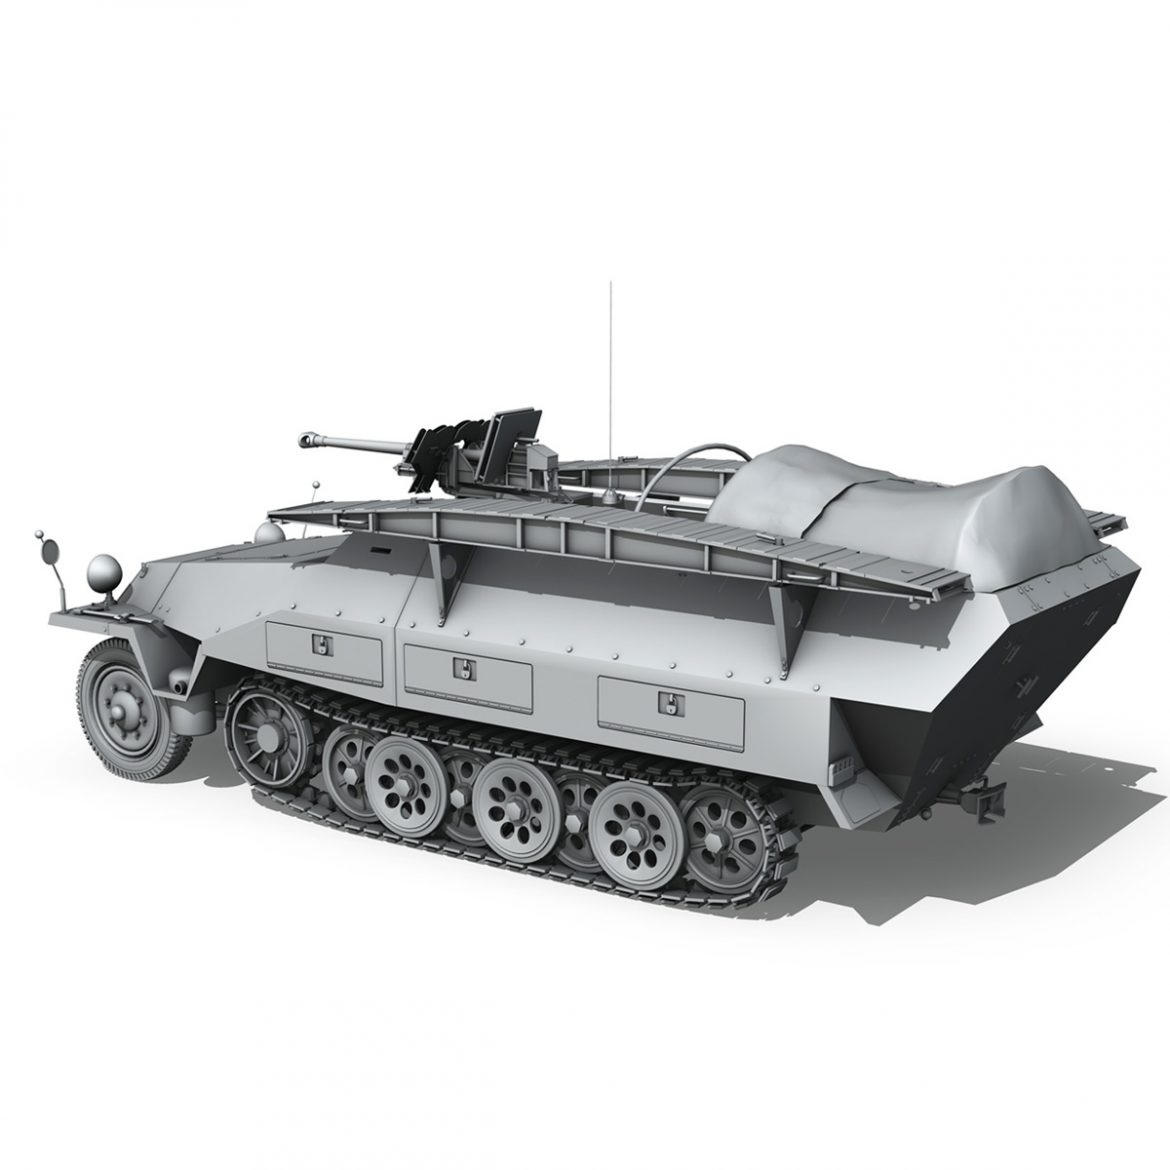 sd.kfz 251/7 ausf.d – assault engineer vehicle 3d model 3ds fbx c4d lwo obj 299575